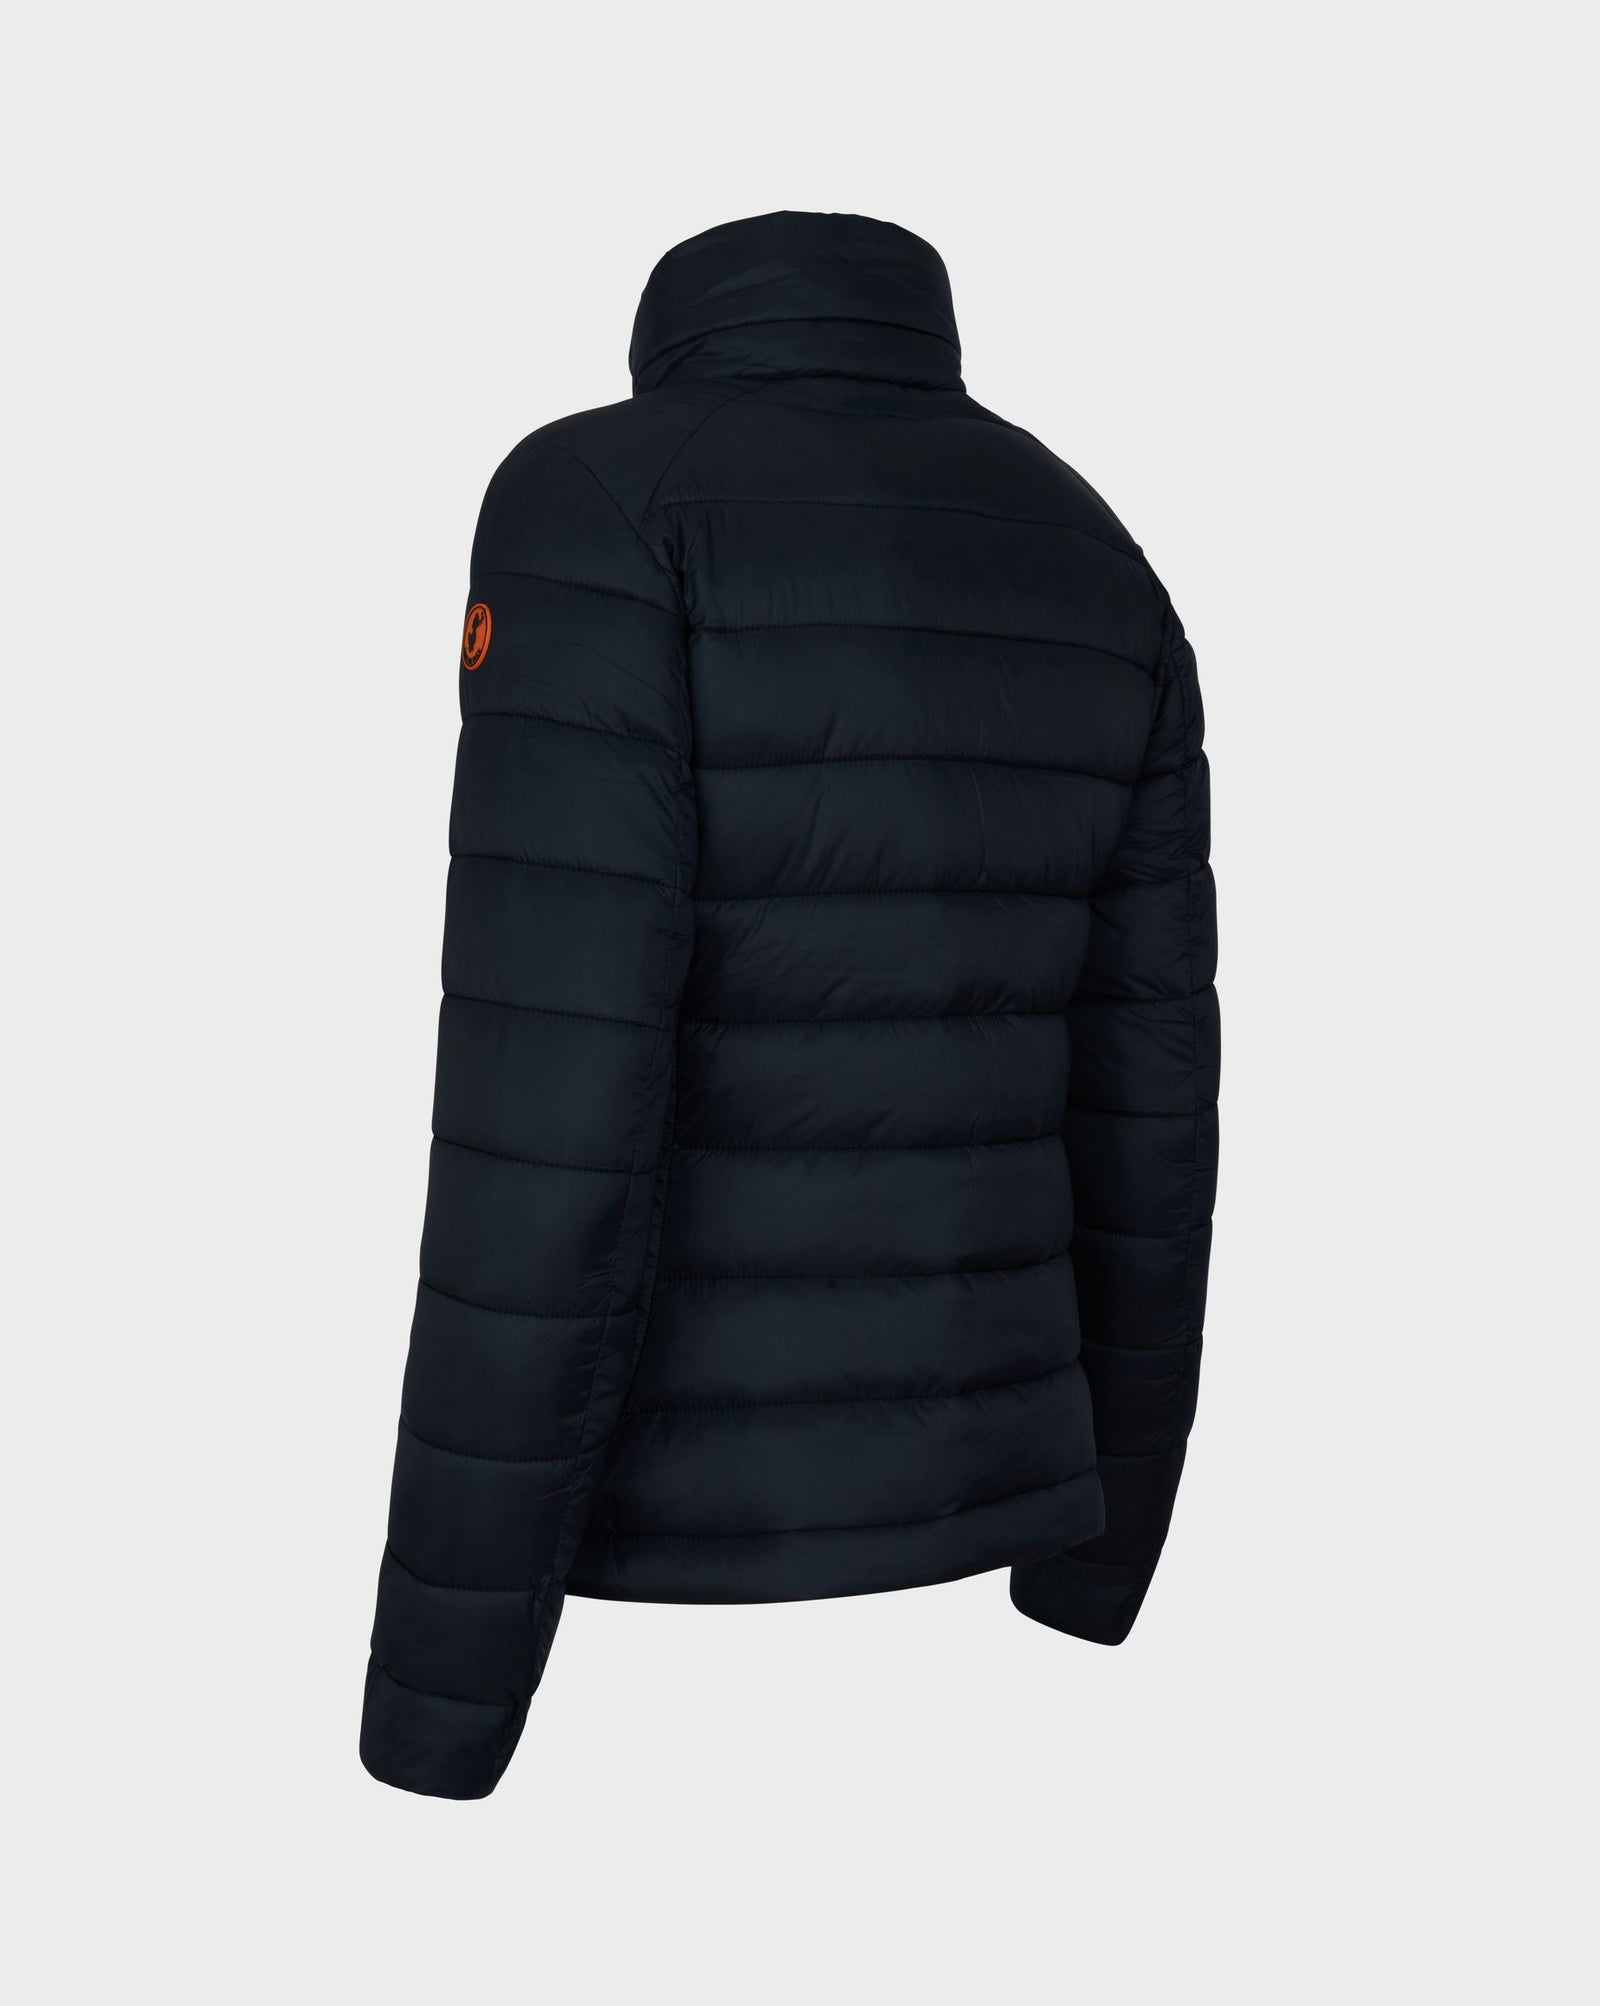 Save the Duck Giga Jacket Black - Luxe EQ